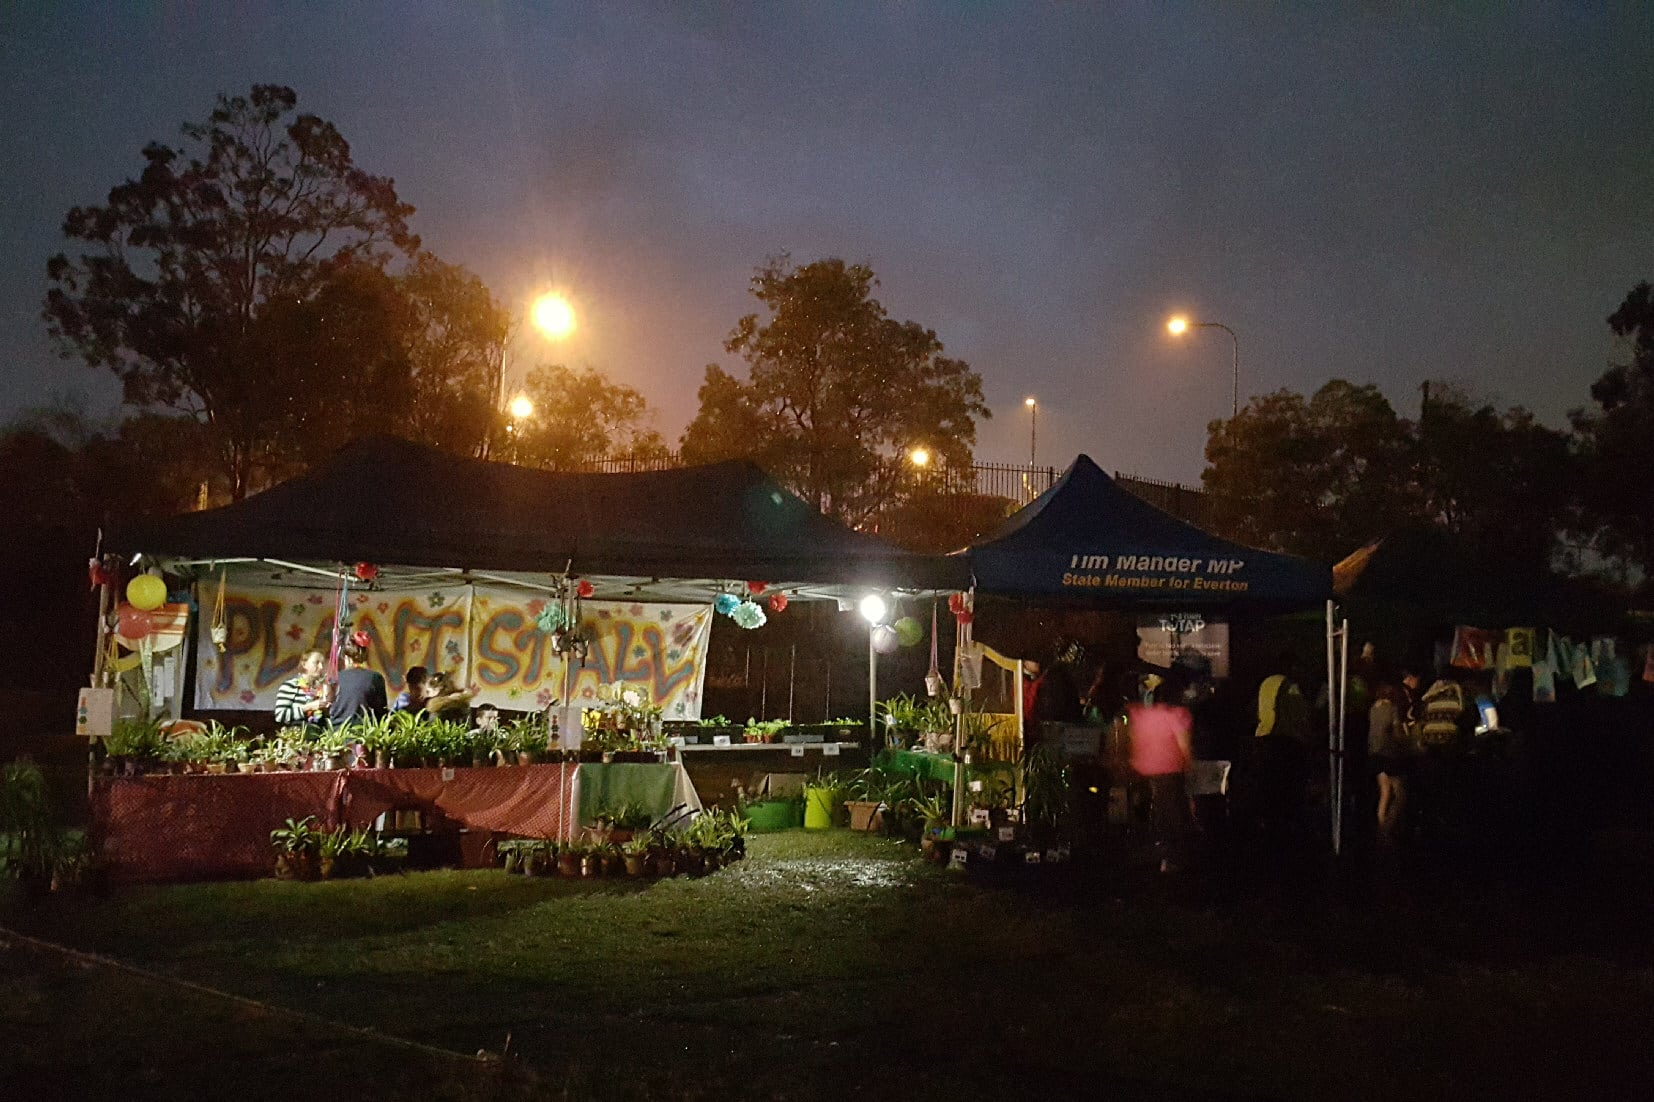 Solar led flood lights with remote control capricorn blackfrog buy bright solar led flood lights online today blackfrog solar are a leading supplier of mozeypictures Choice Image